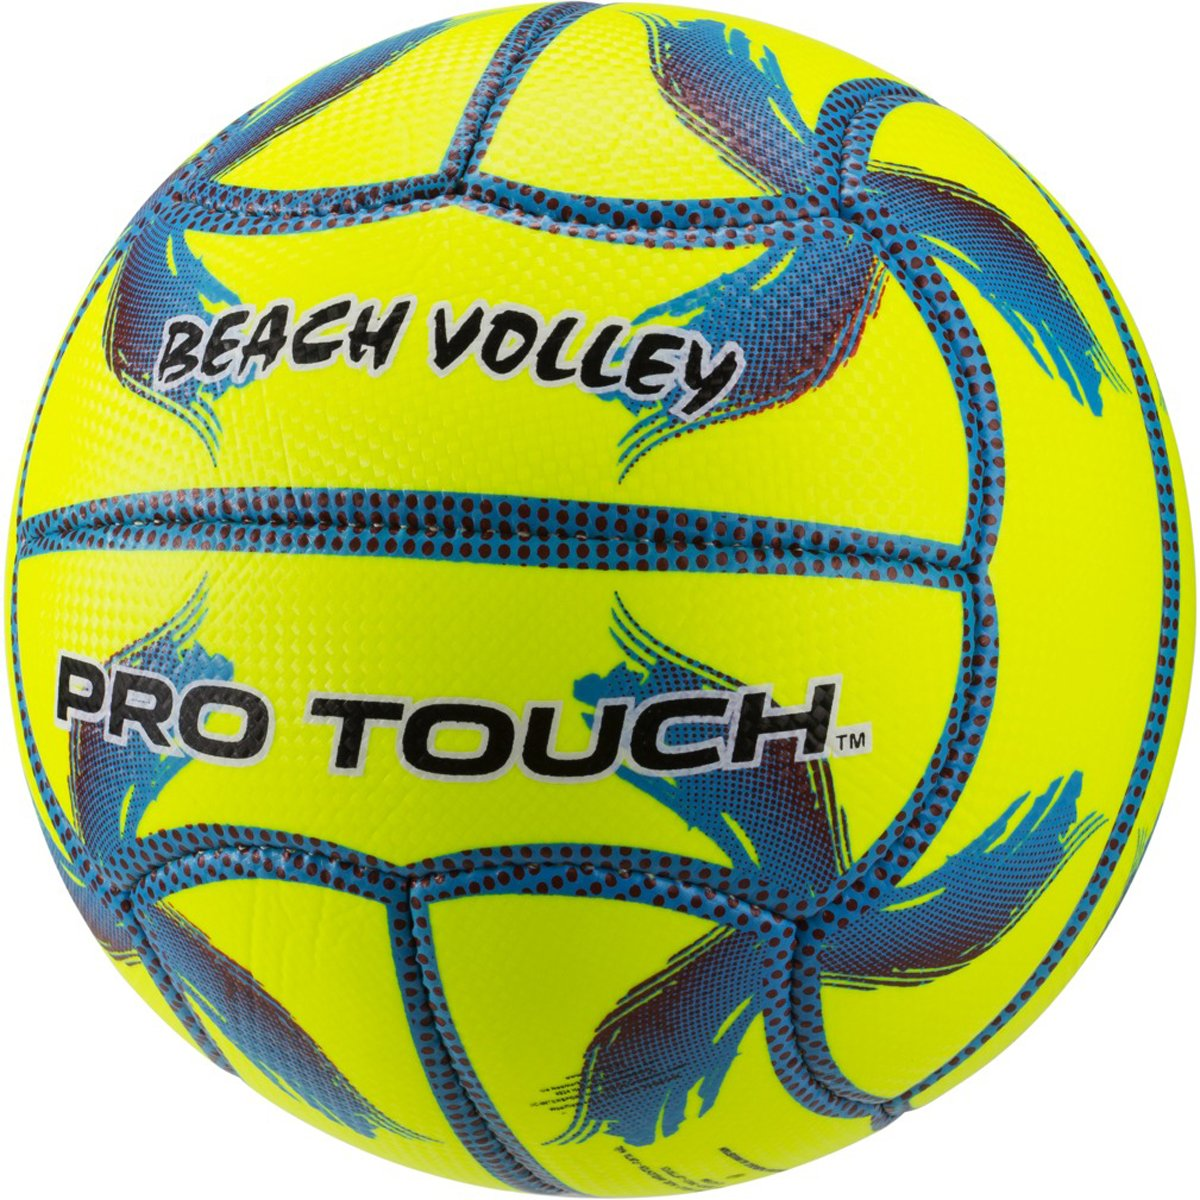 PRO TOUCH 274466900005 Ballon de Beach-Volley Mixte Adulte, Jaune/Bleu/Lila, 5 RPOJZ|#Mikasa